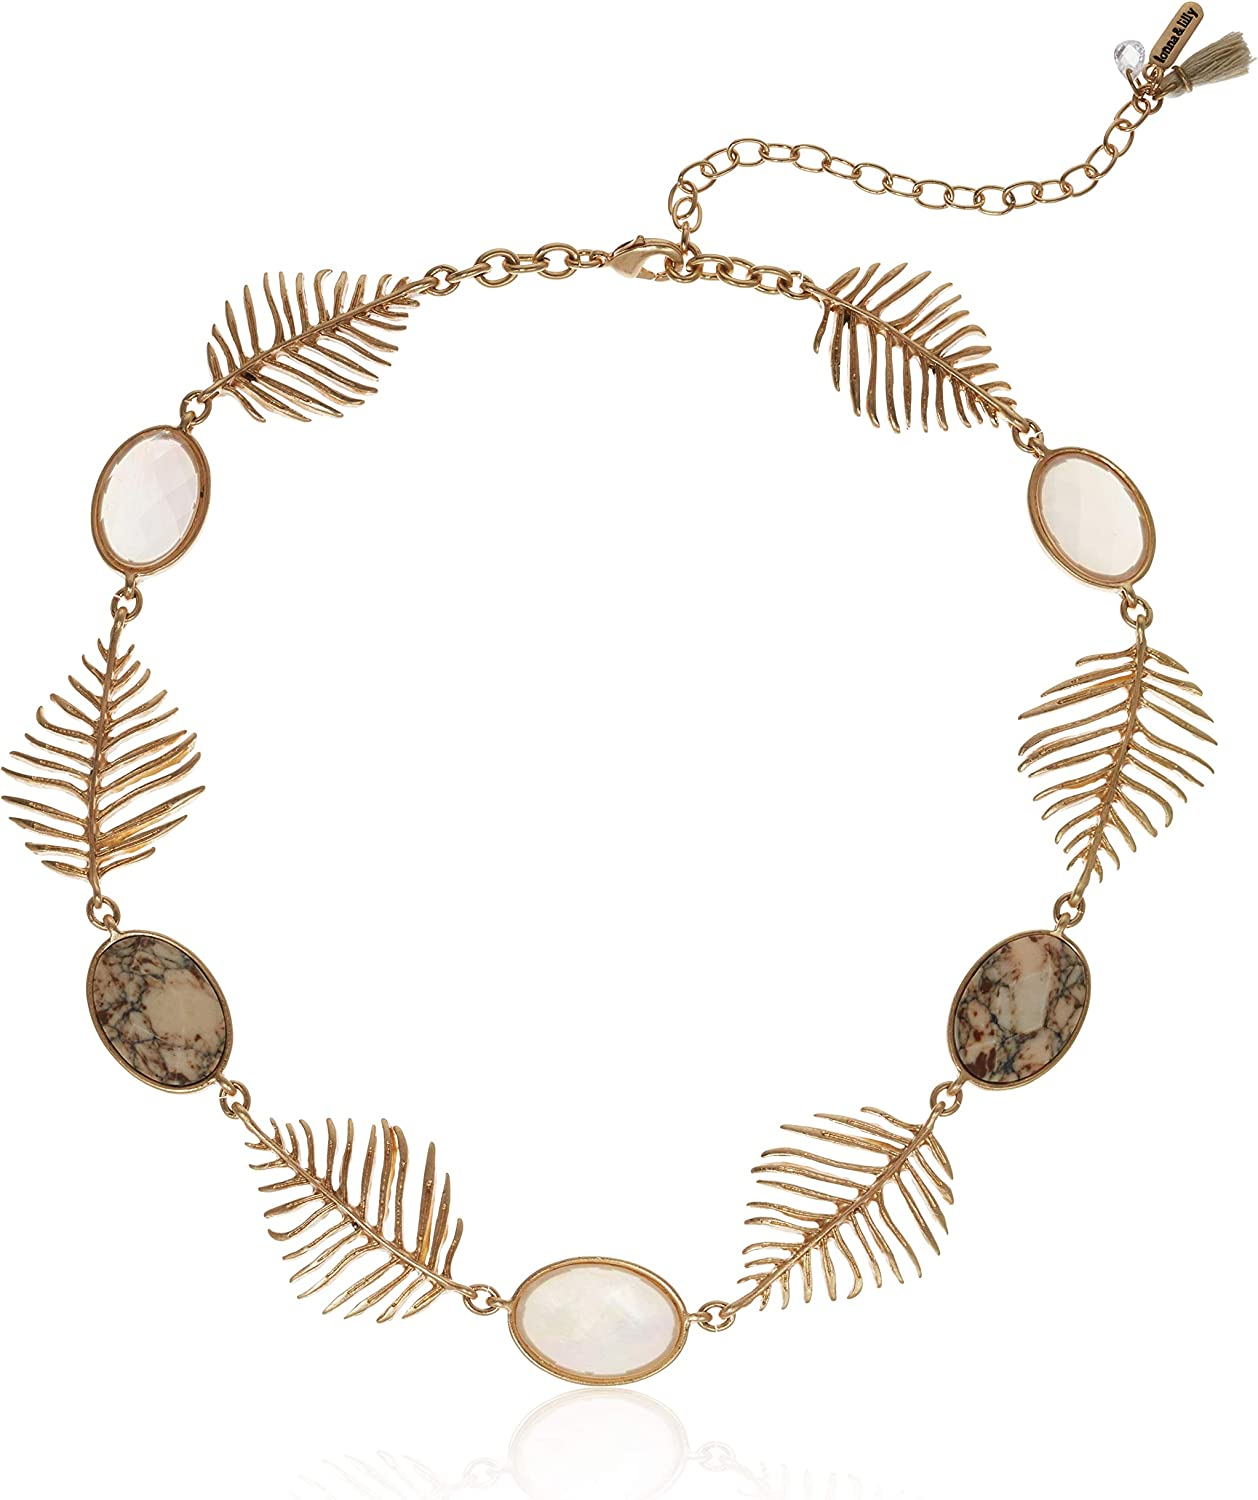 Lonna & Lilly Women's Gold Tone Neutral Leaf Collar Necklace, One Size